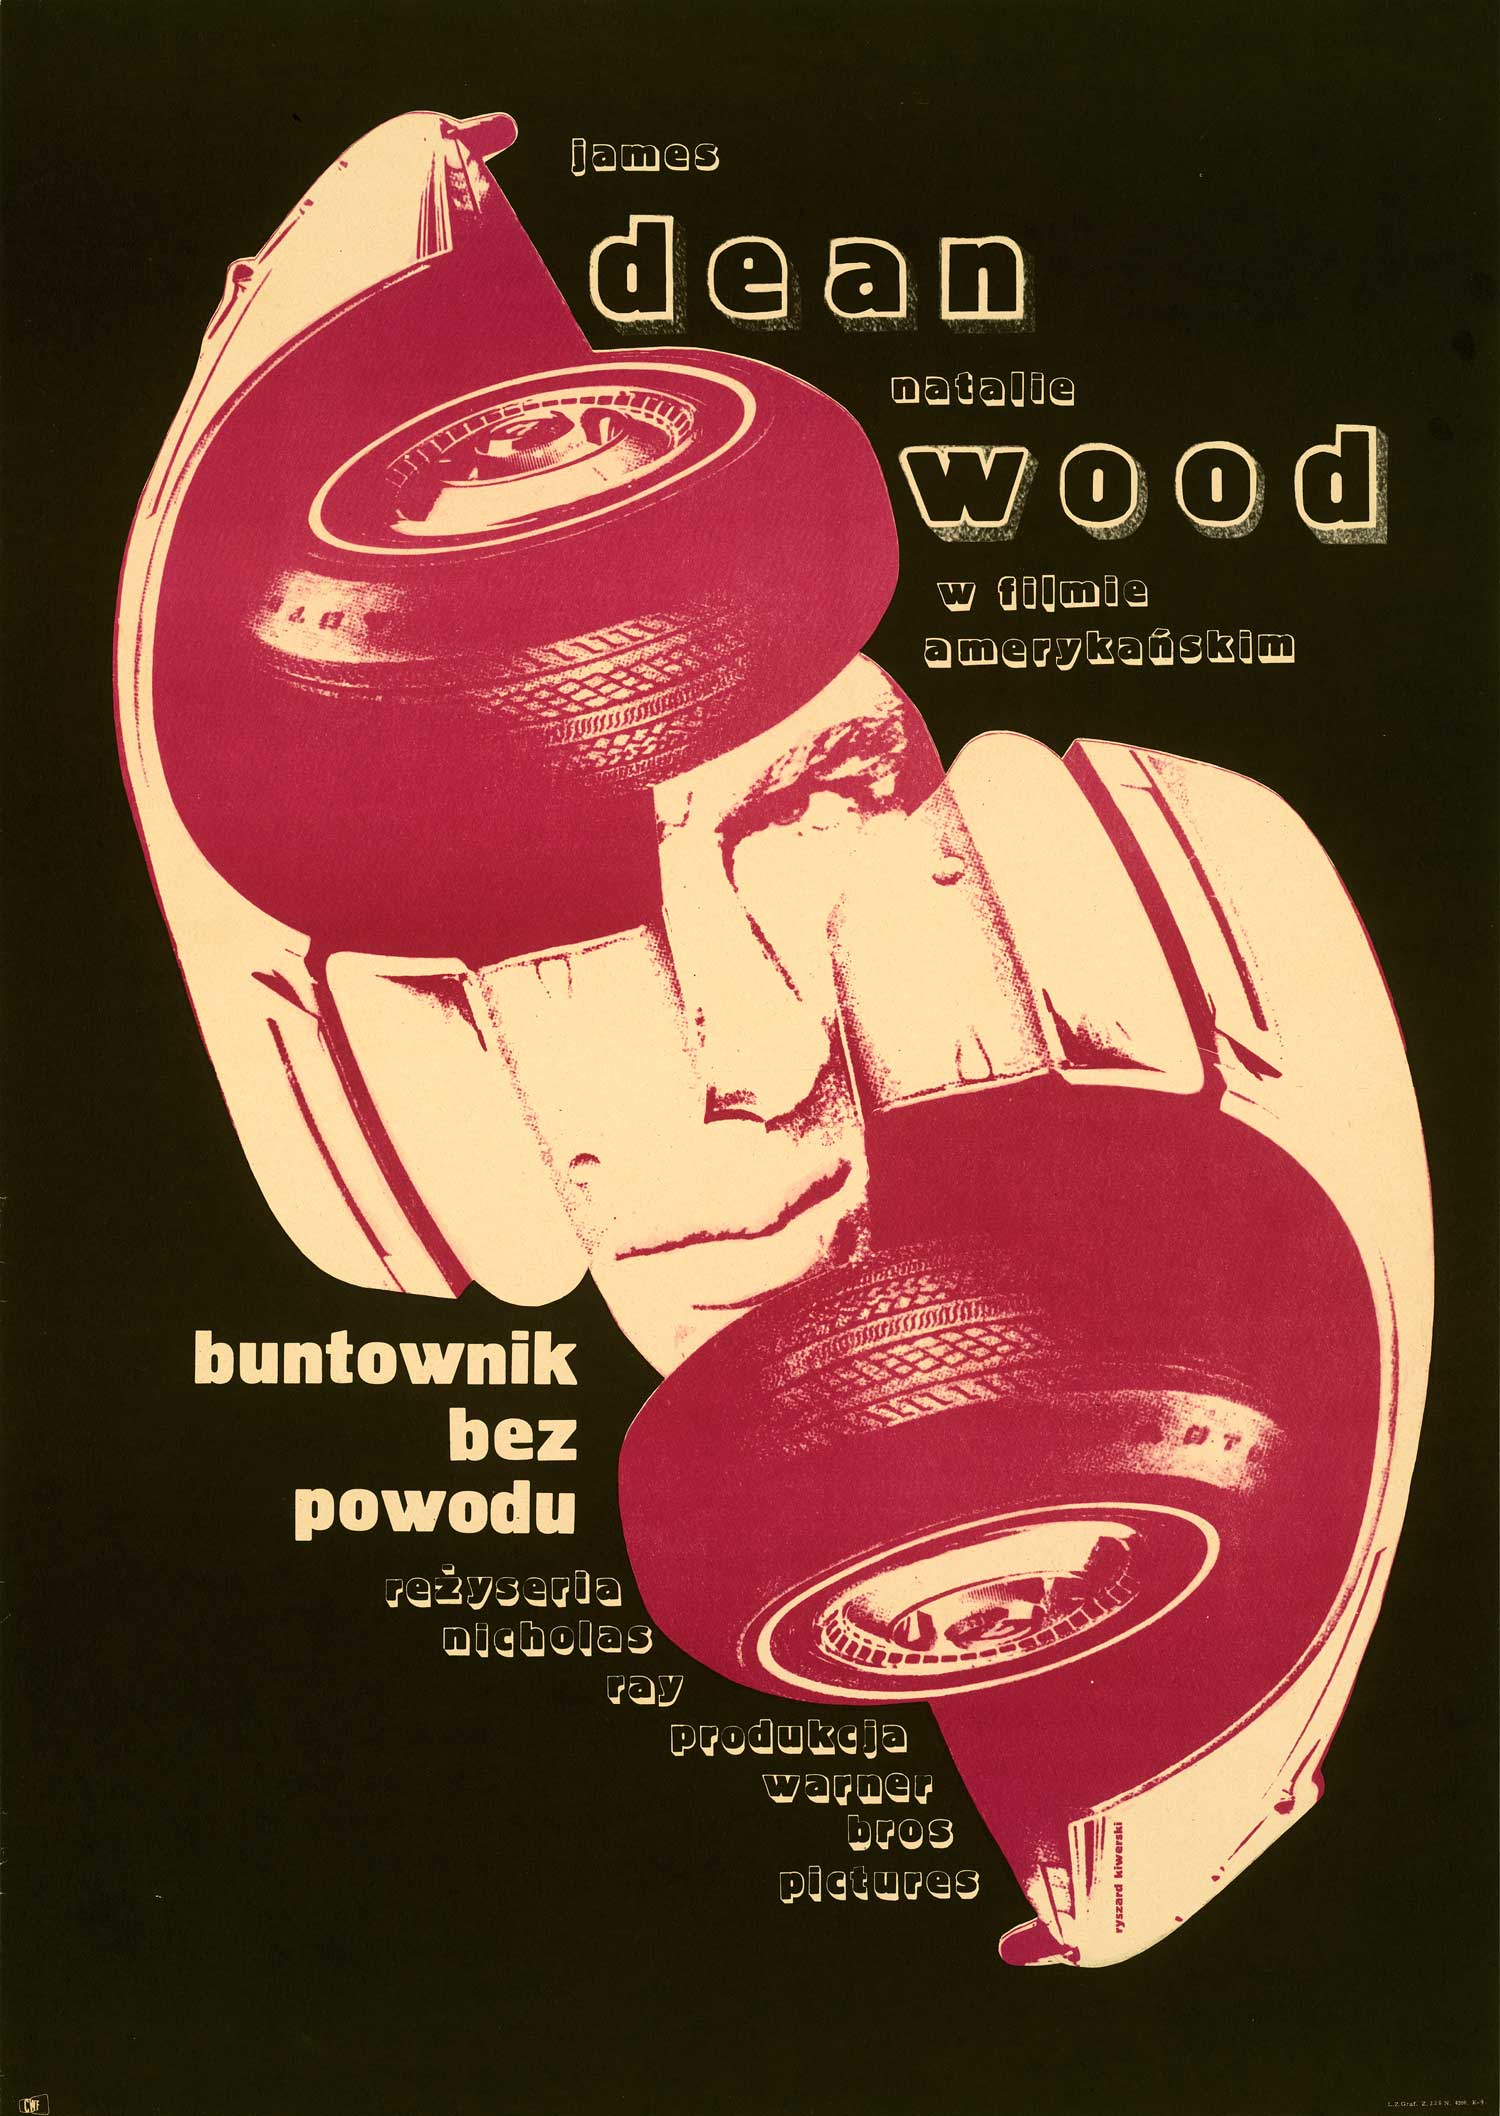 One of the more unusual posters for Rebel without a Cause can be found in this Polish design.